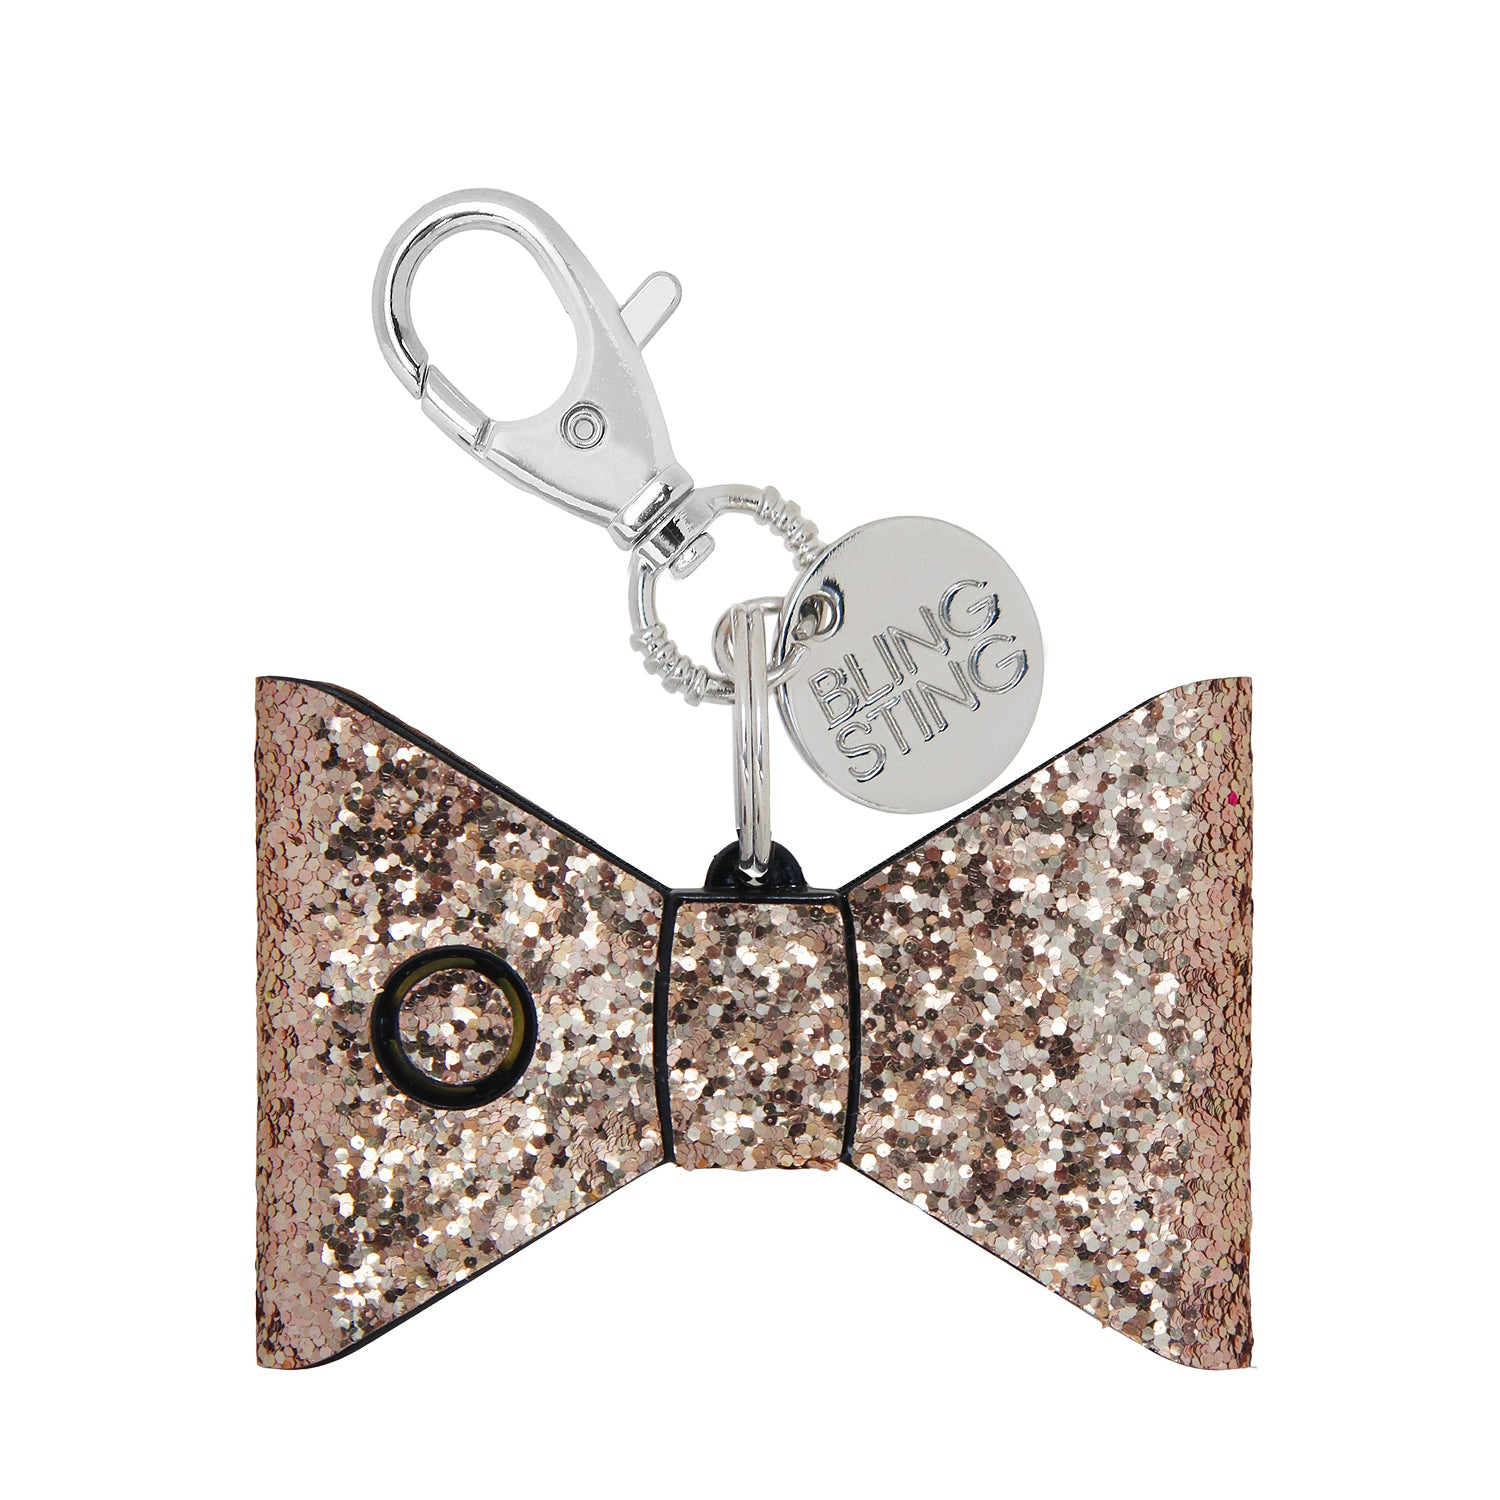 Personal Security Alarm - Glitter Bow (Rose Gold FRONT)